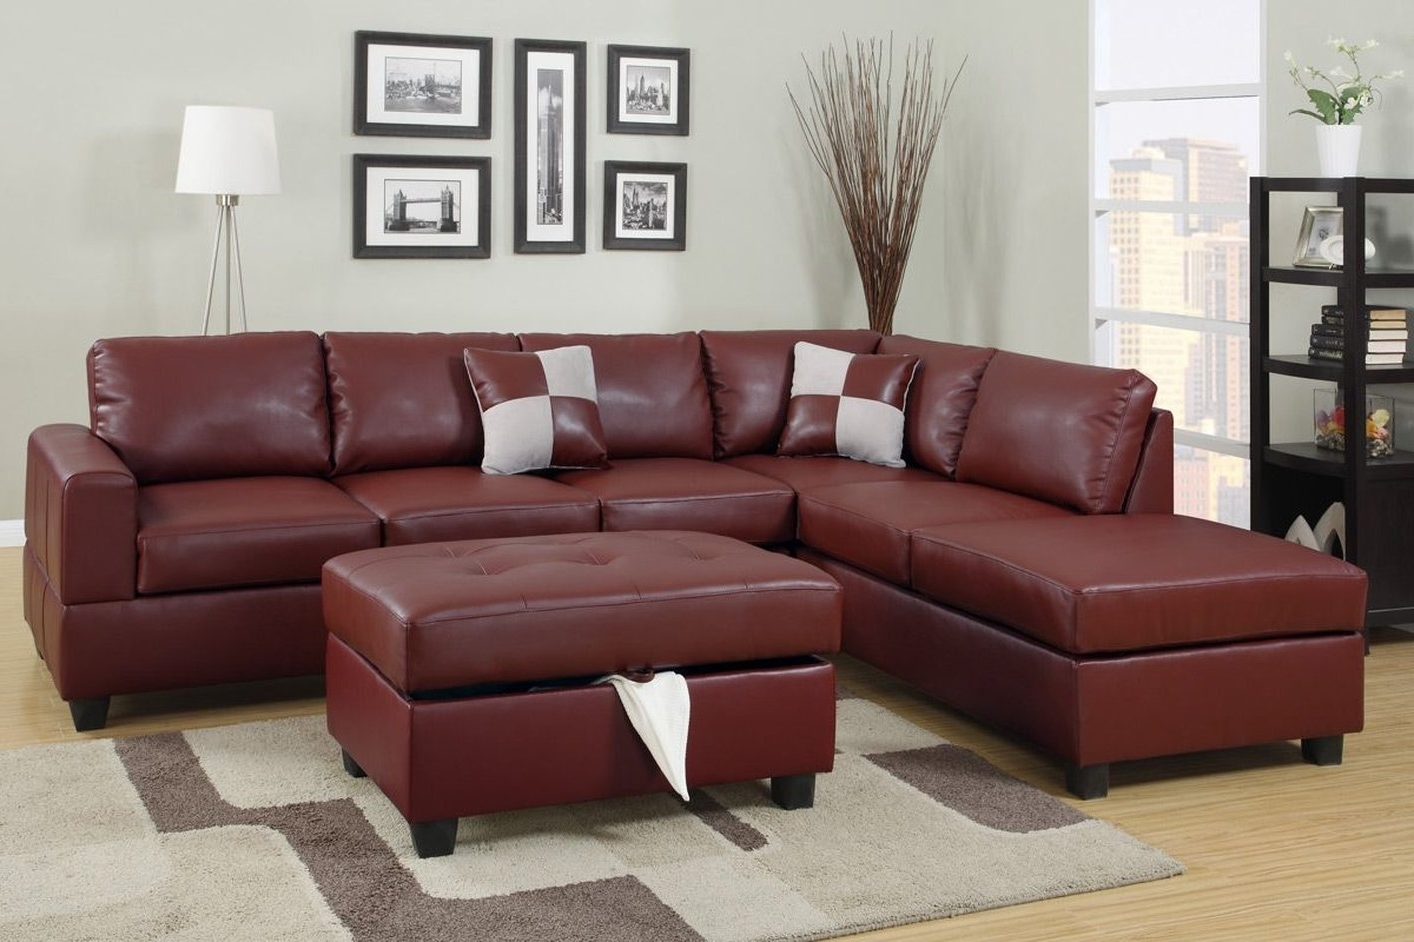 Featured Photo of Red Leather Sectional Sofas With Ottoman